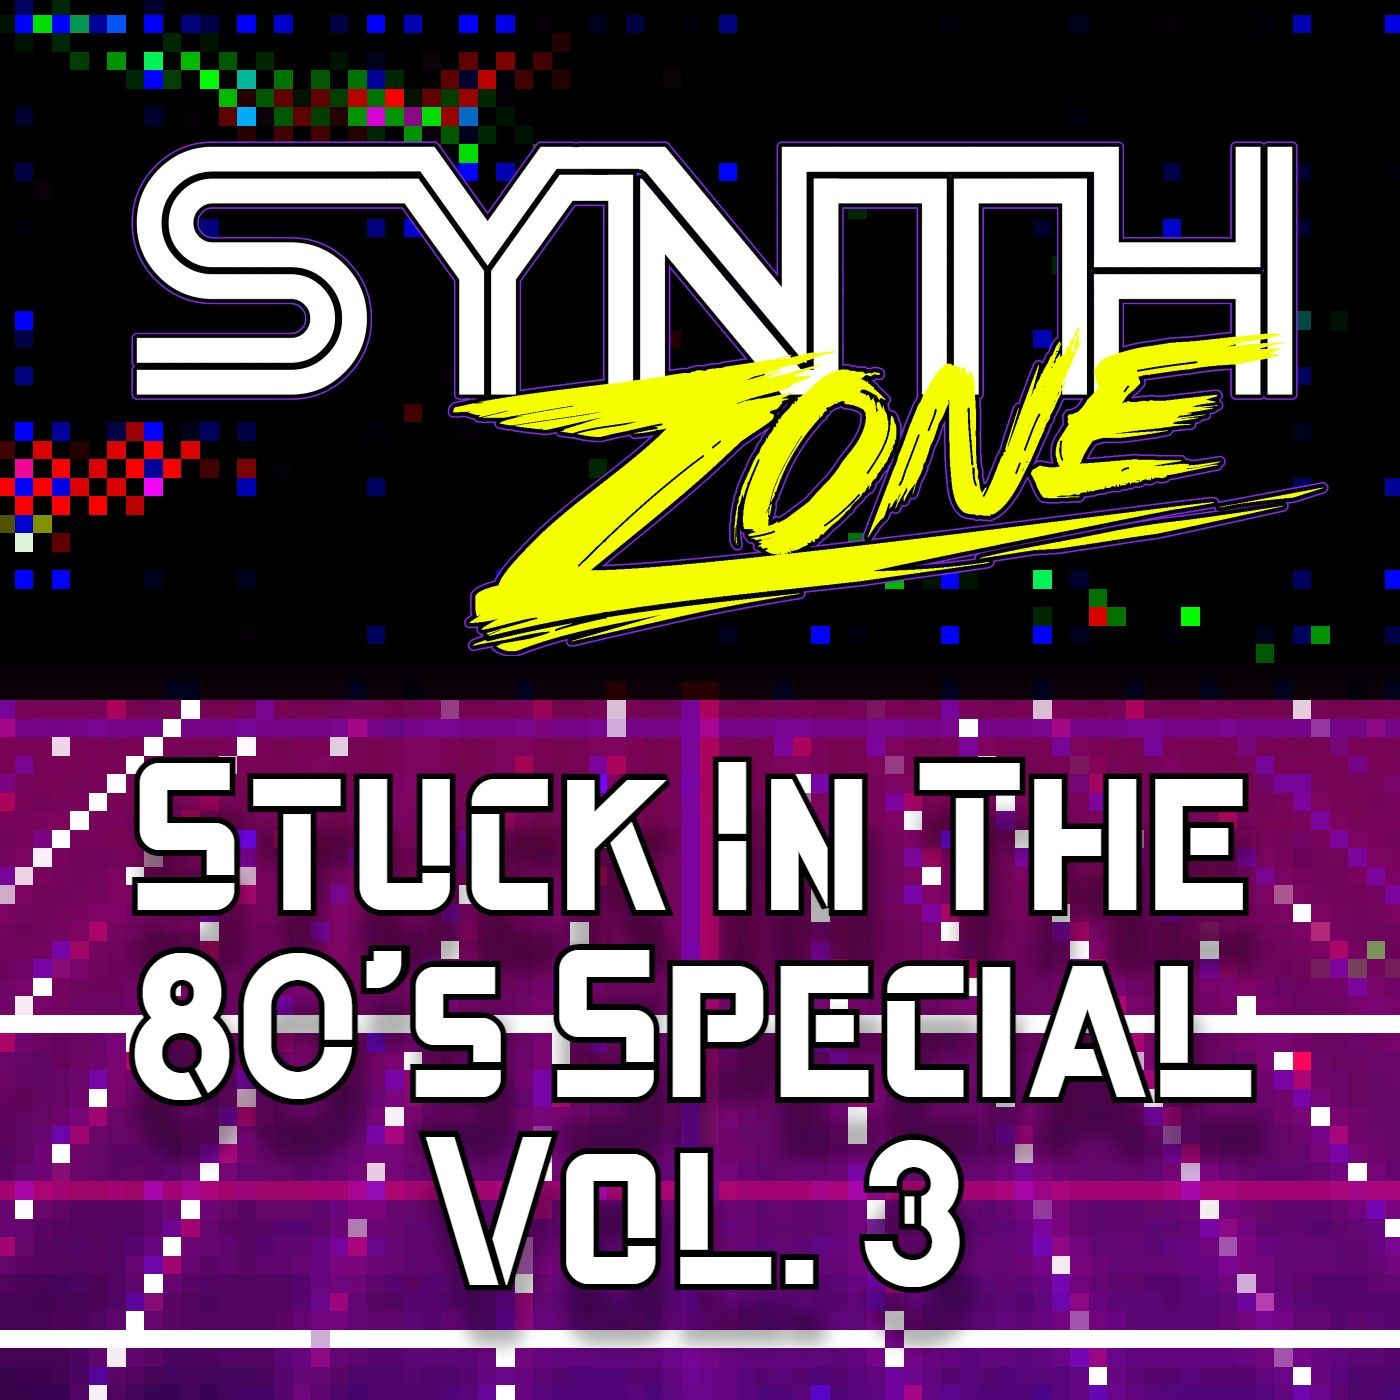 Synth Zone 196 - 05/16/21 (Stuck In The 80's Special Vol. 3)